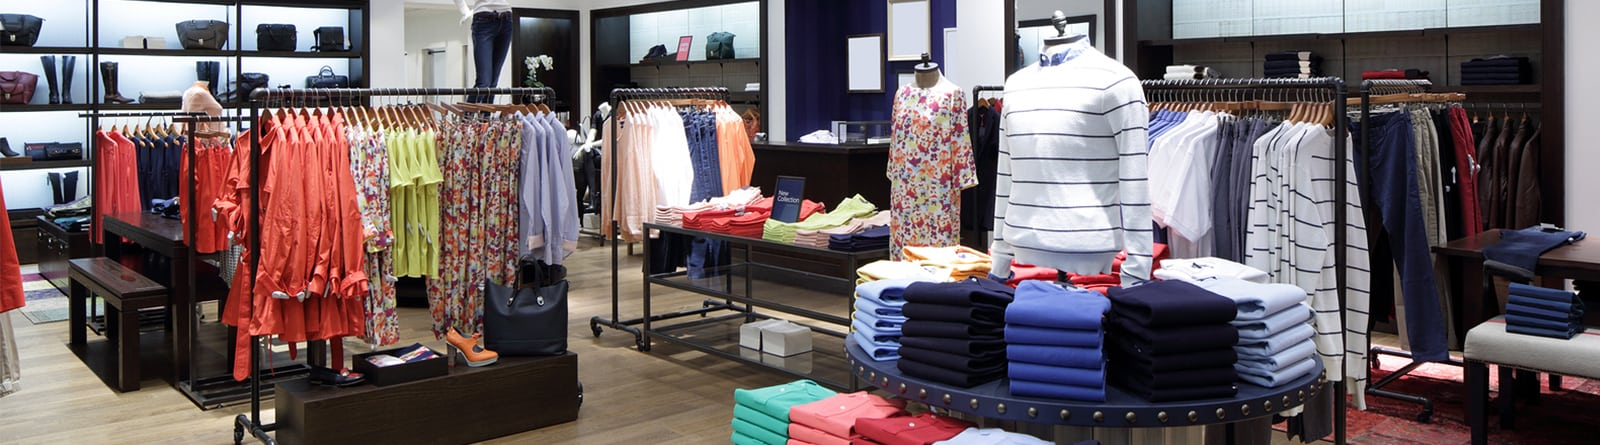 fashion outlet interior